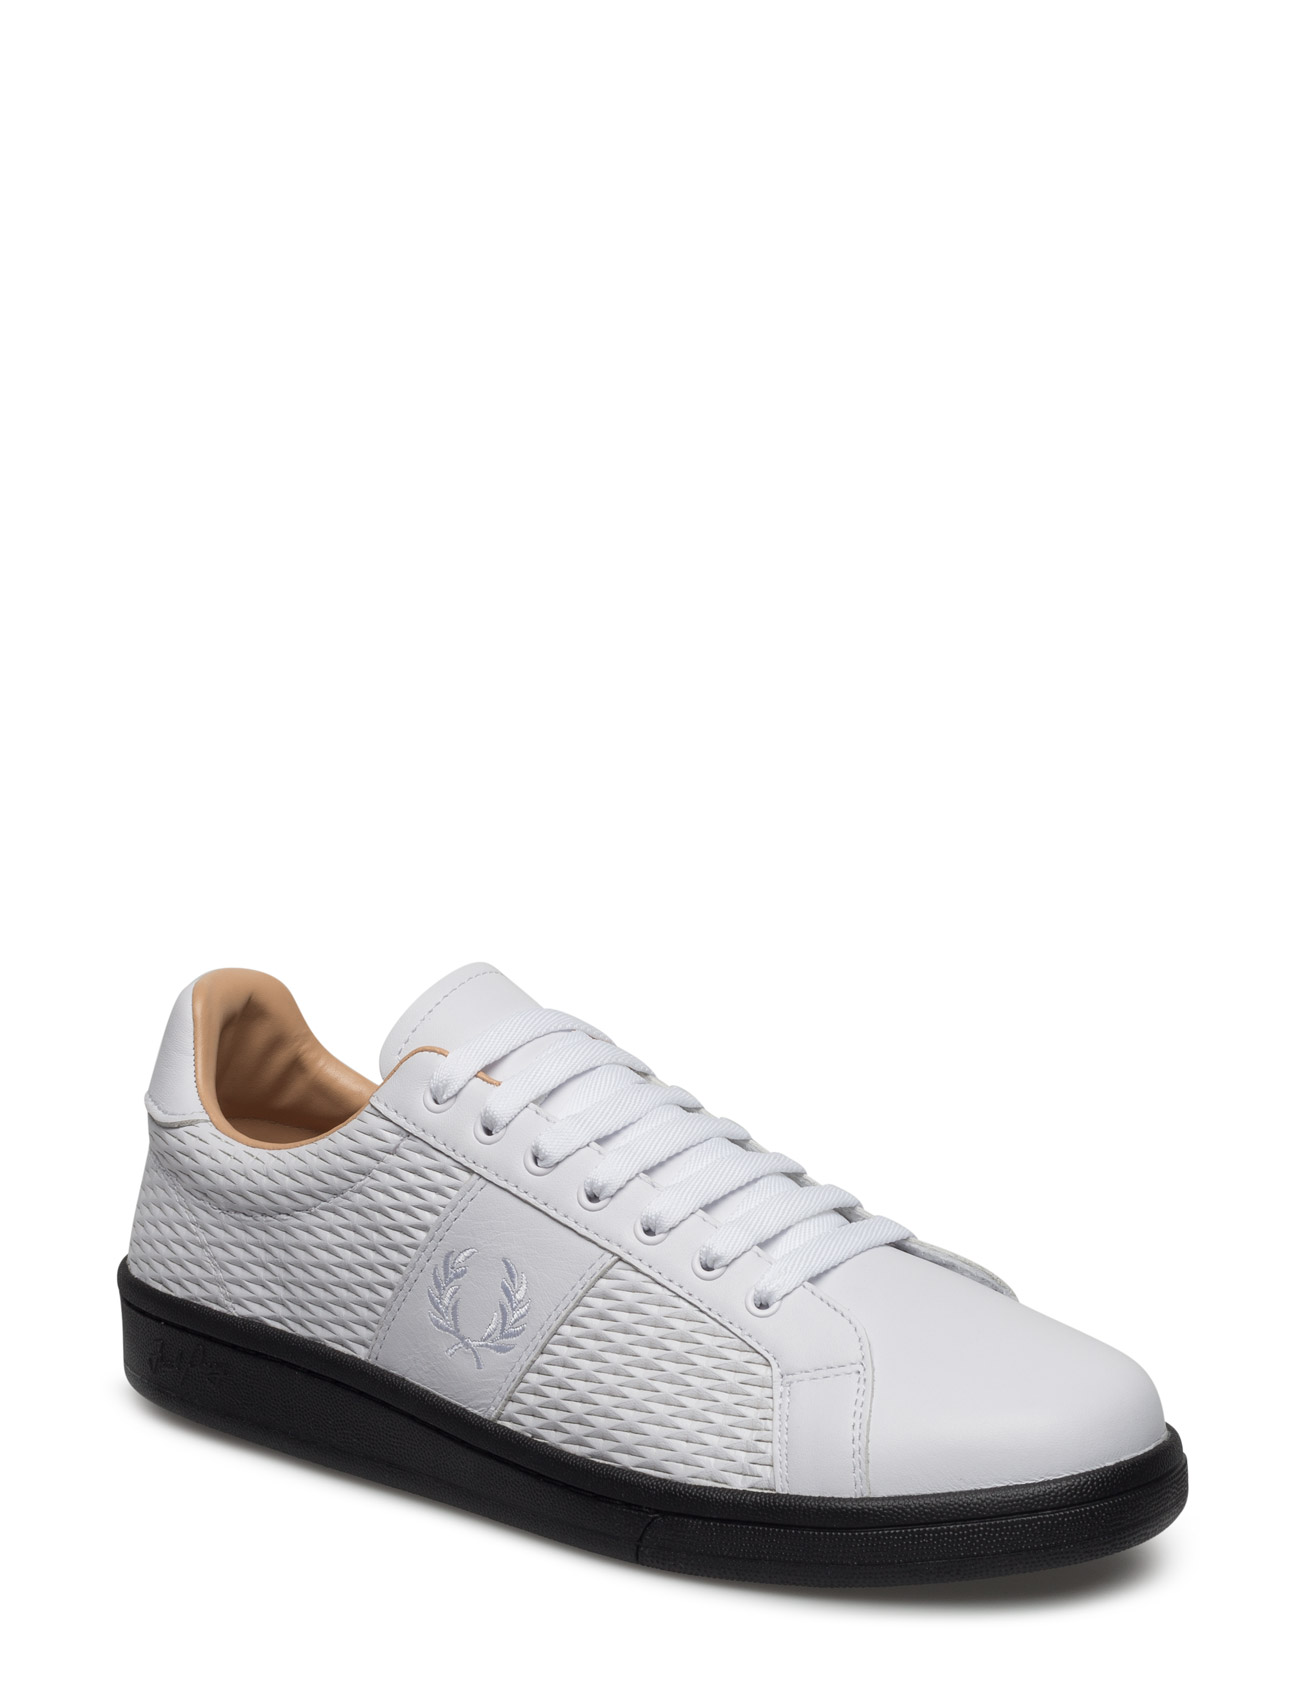 B721 Perf Leather Fred Perry Sneakers til Herrer i